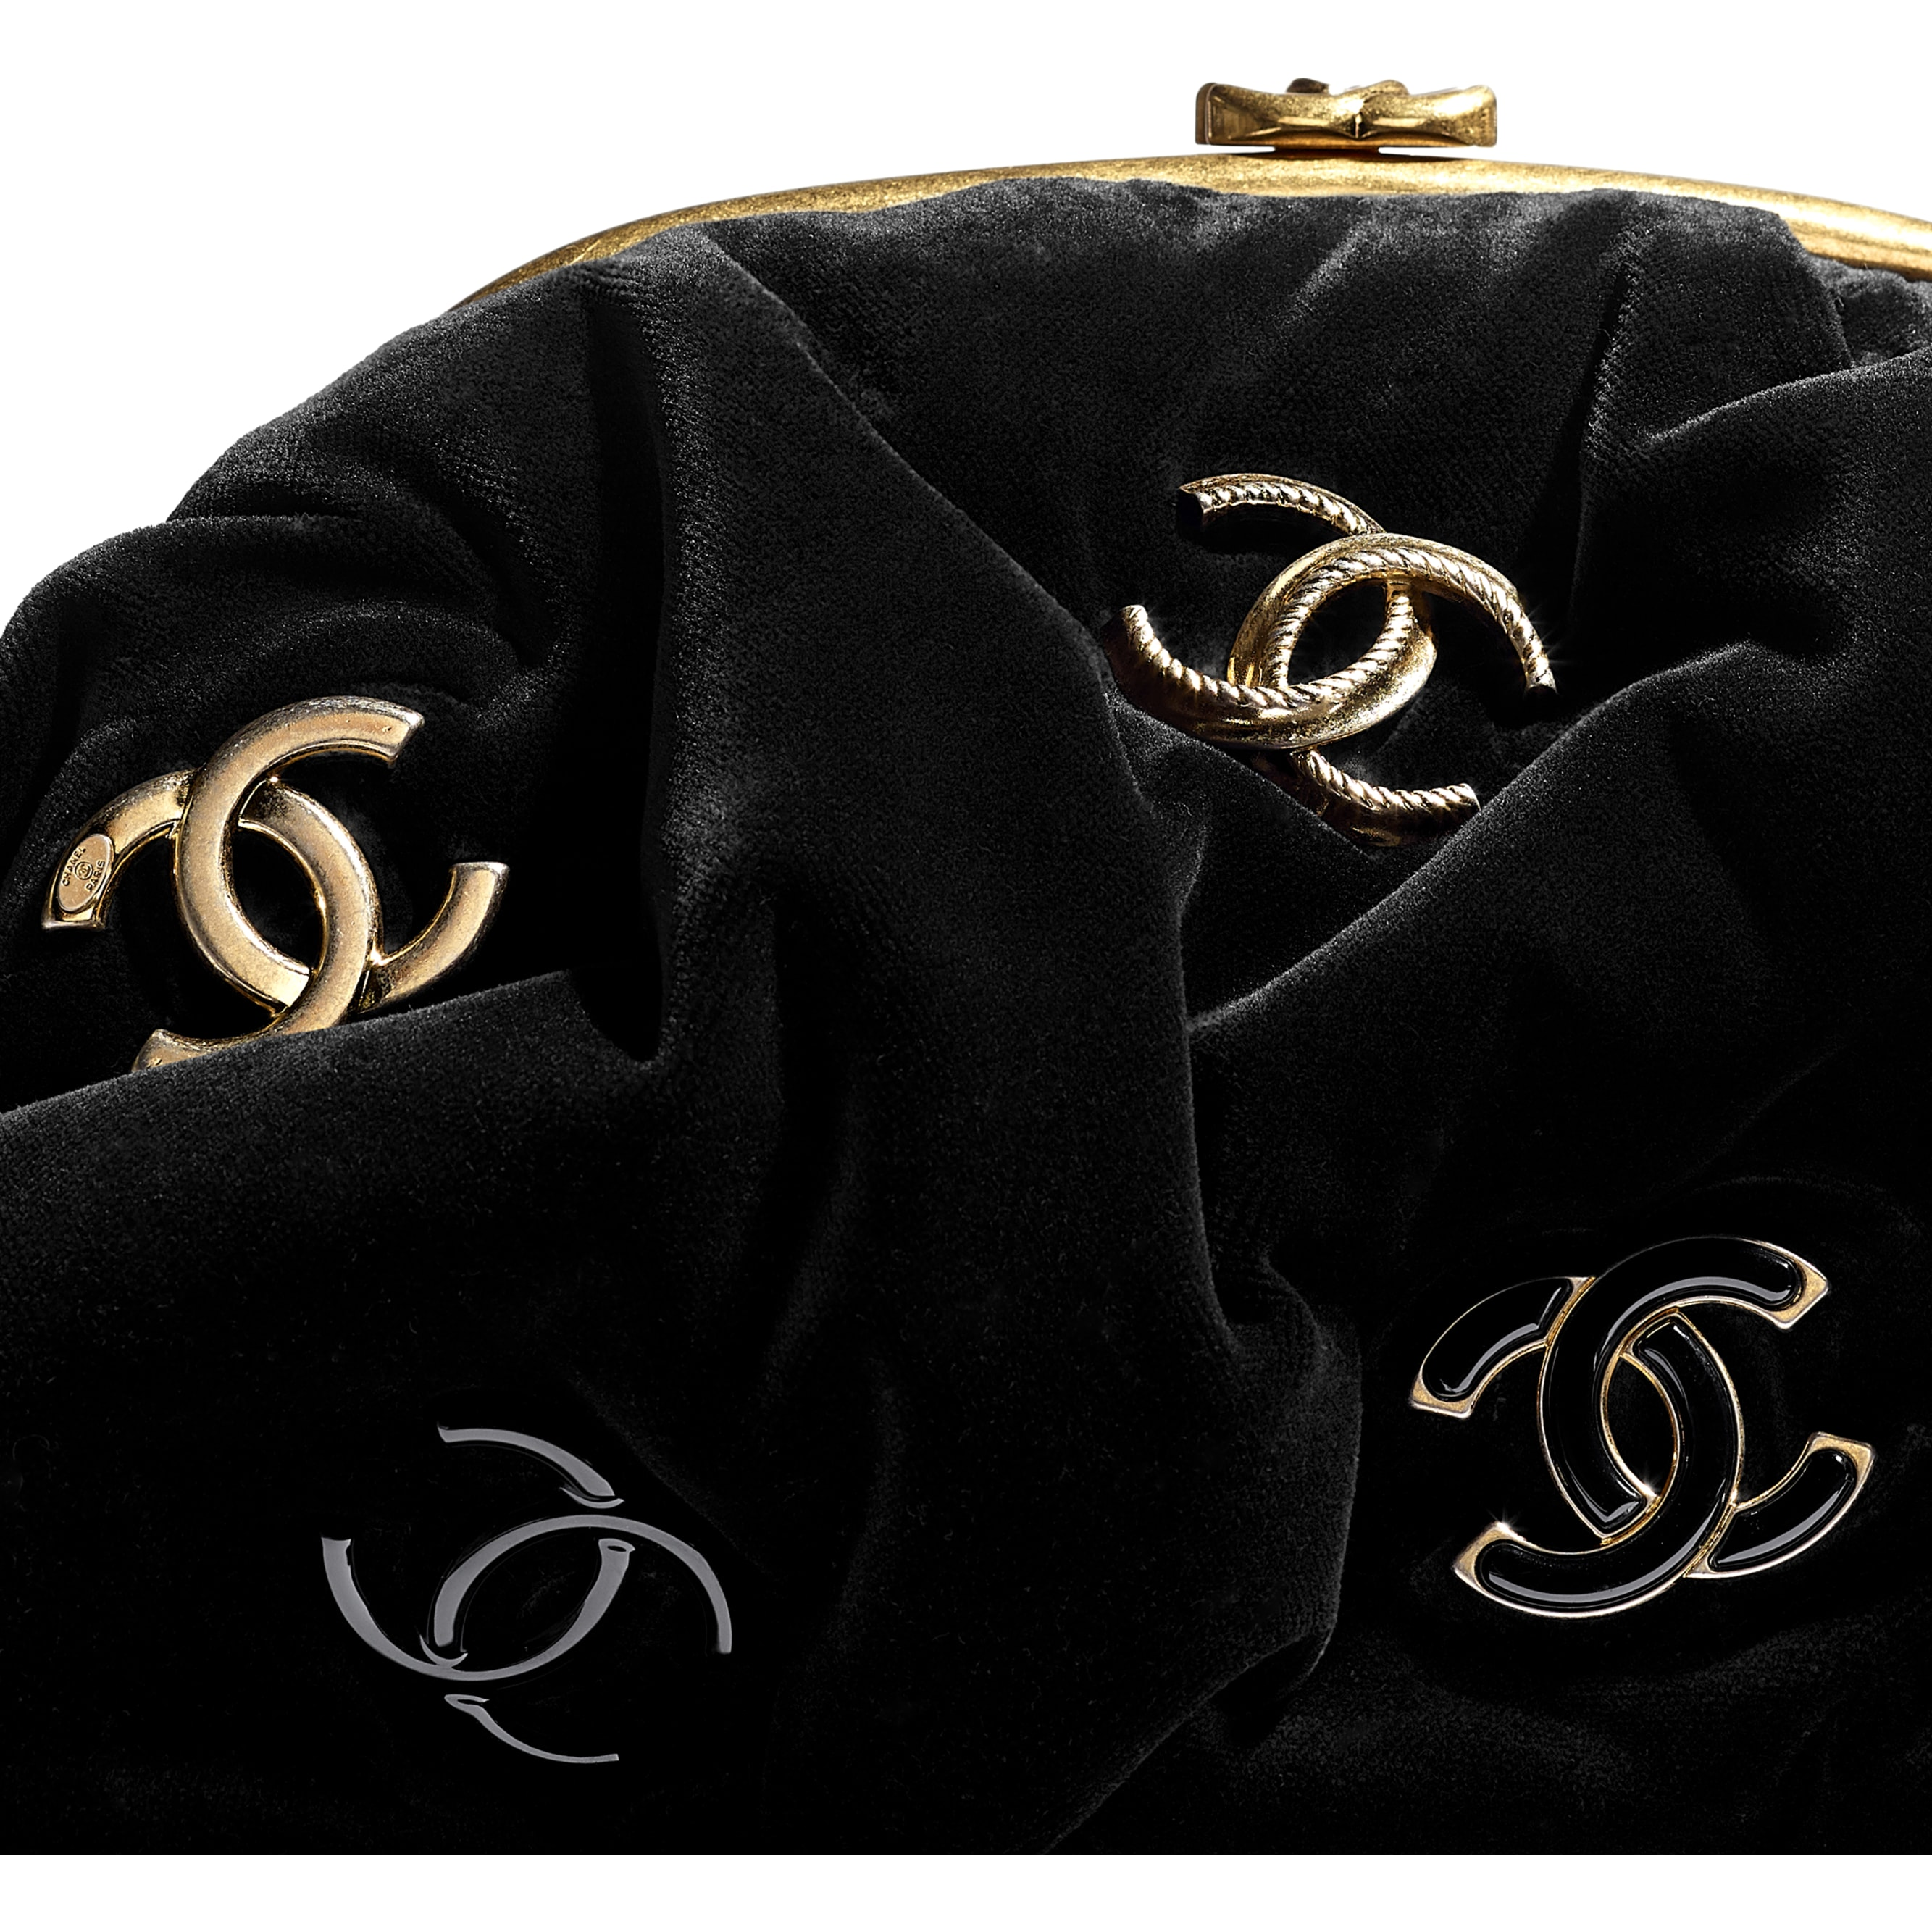 Clutch - Black - Velvet, Black & Gold-Tone Metal - CHANEL - Extra view - see standard sized version